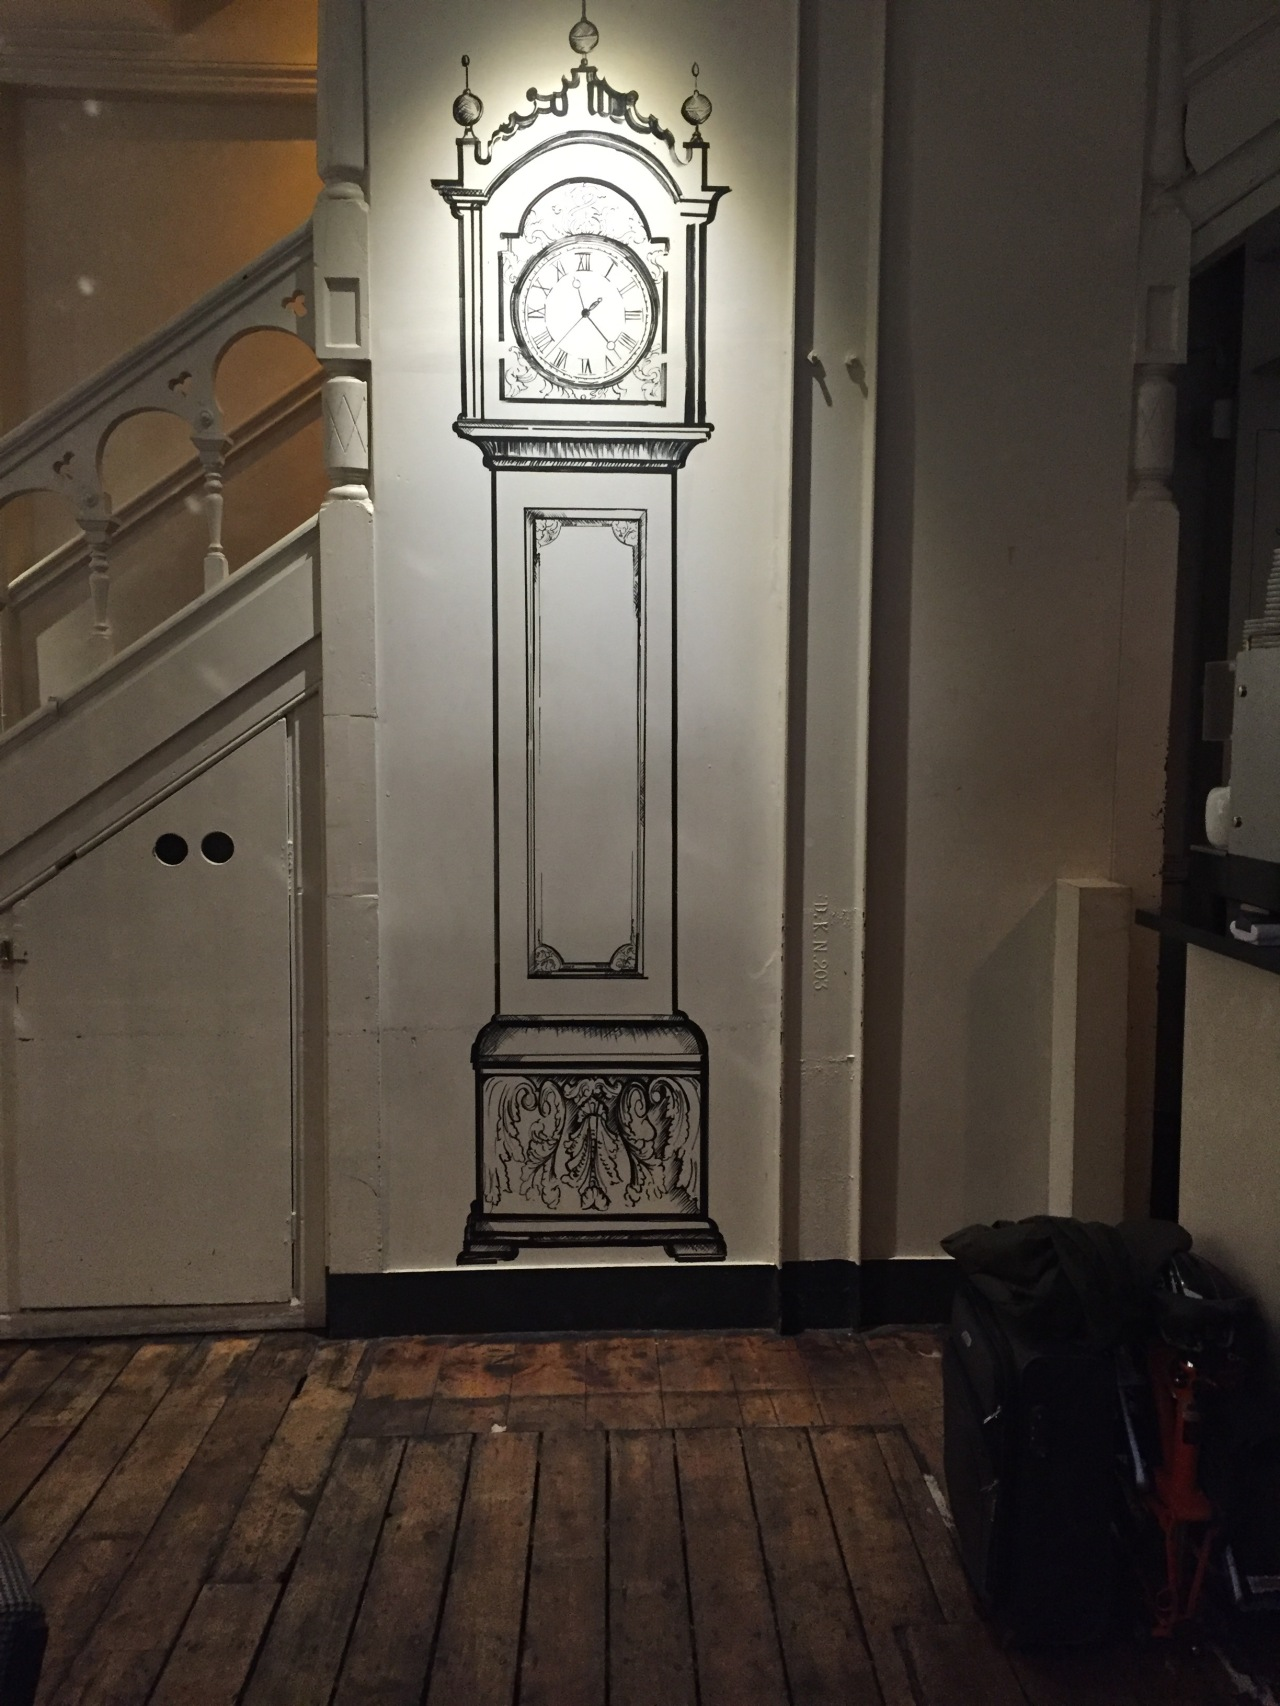 Handdrawn Art of a Grandfather Clock